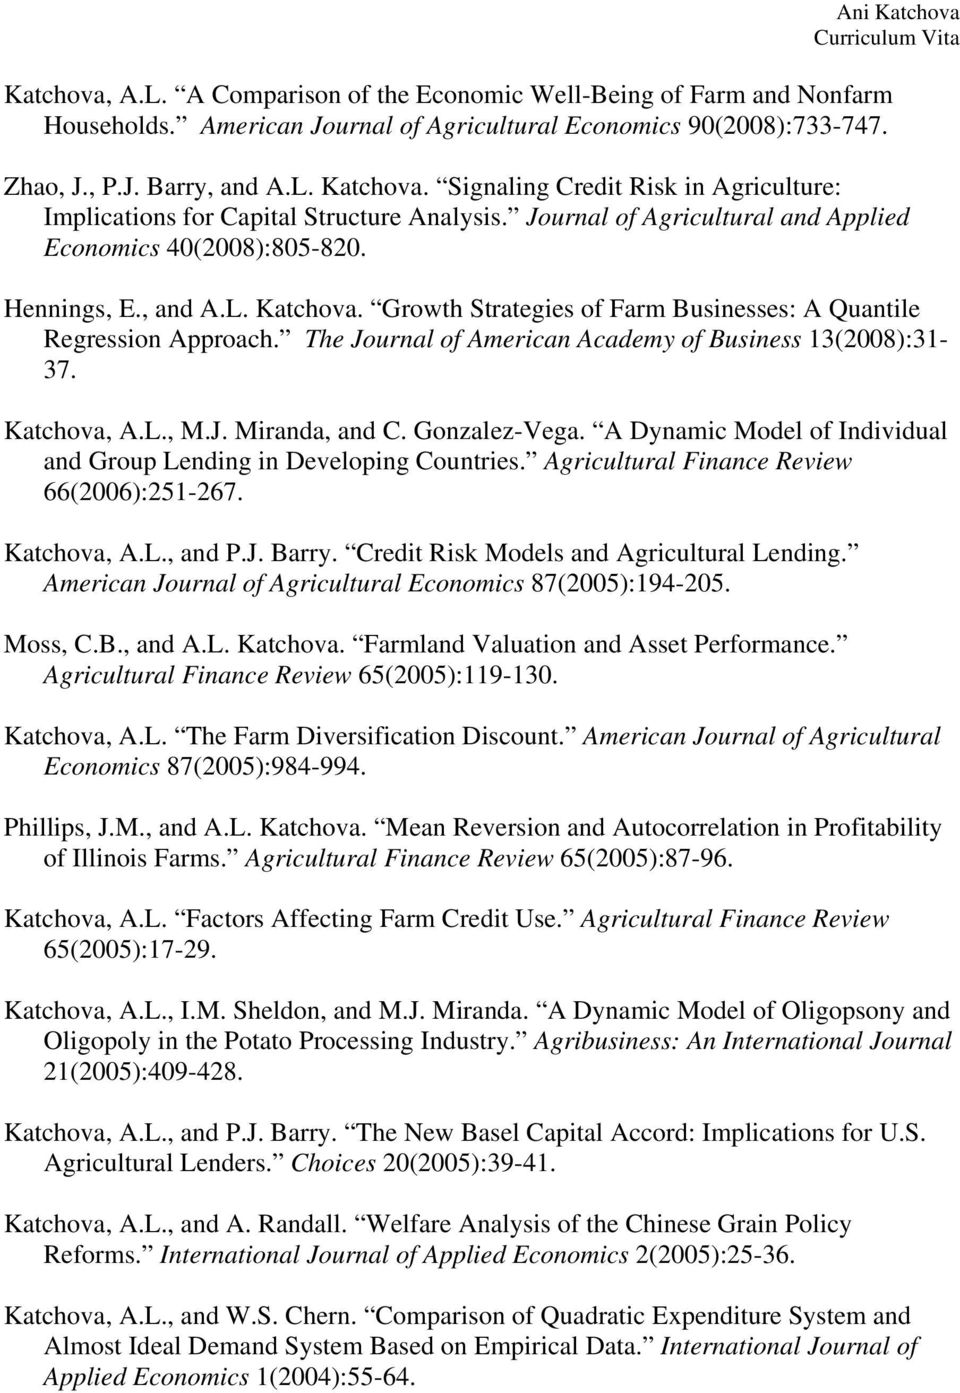 Growth Strategies of Farm Businesses: A Quantile Regression Approach. The Journal of American Academy of Business 13(2008):31-37. Katchova, A.L., M.J. Miranda, and C. Gonzalez-Vega.